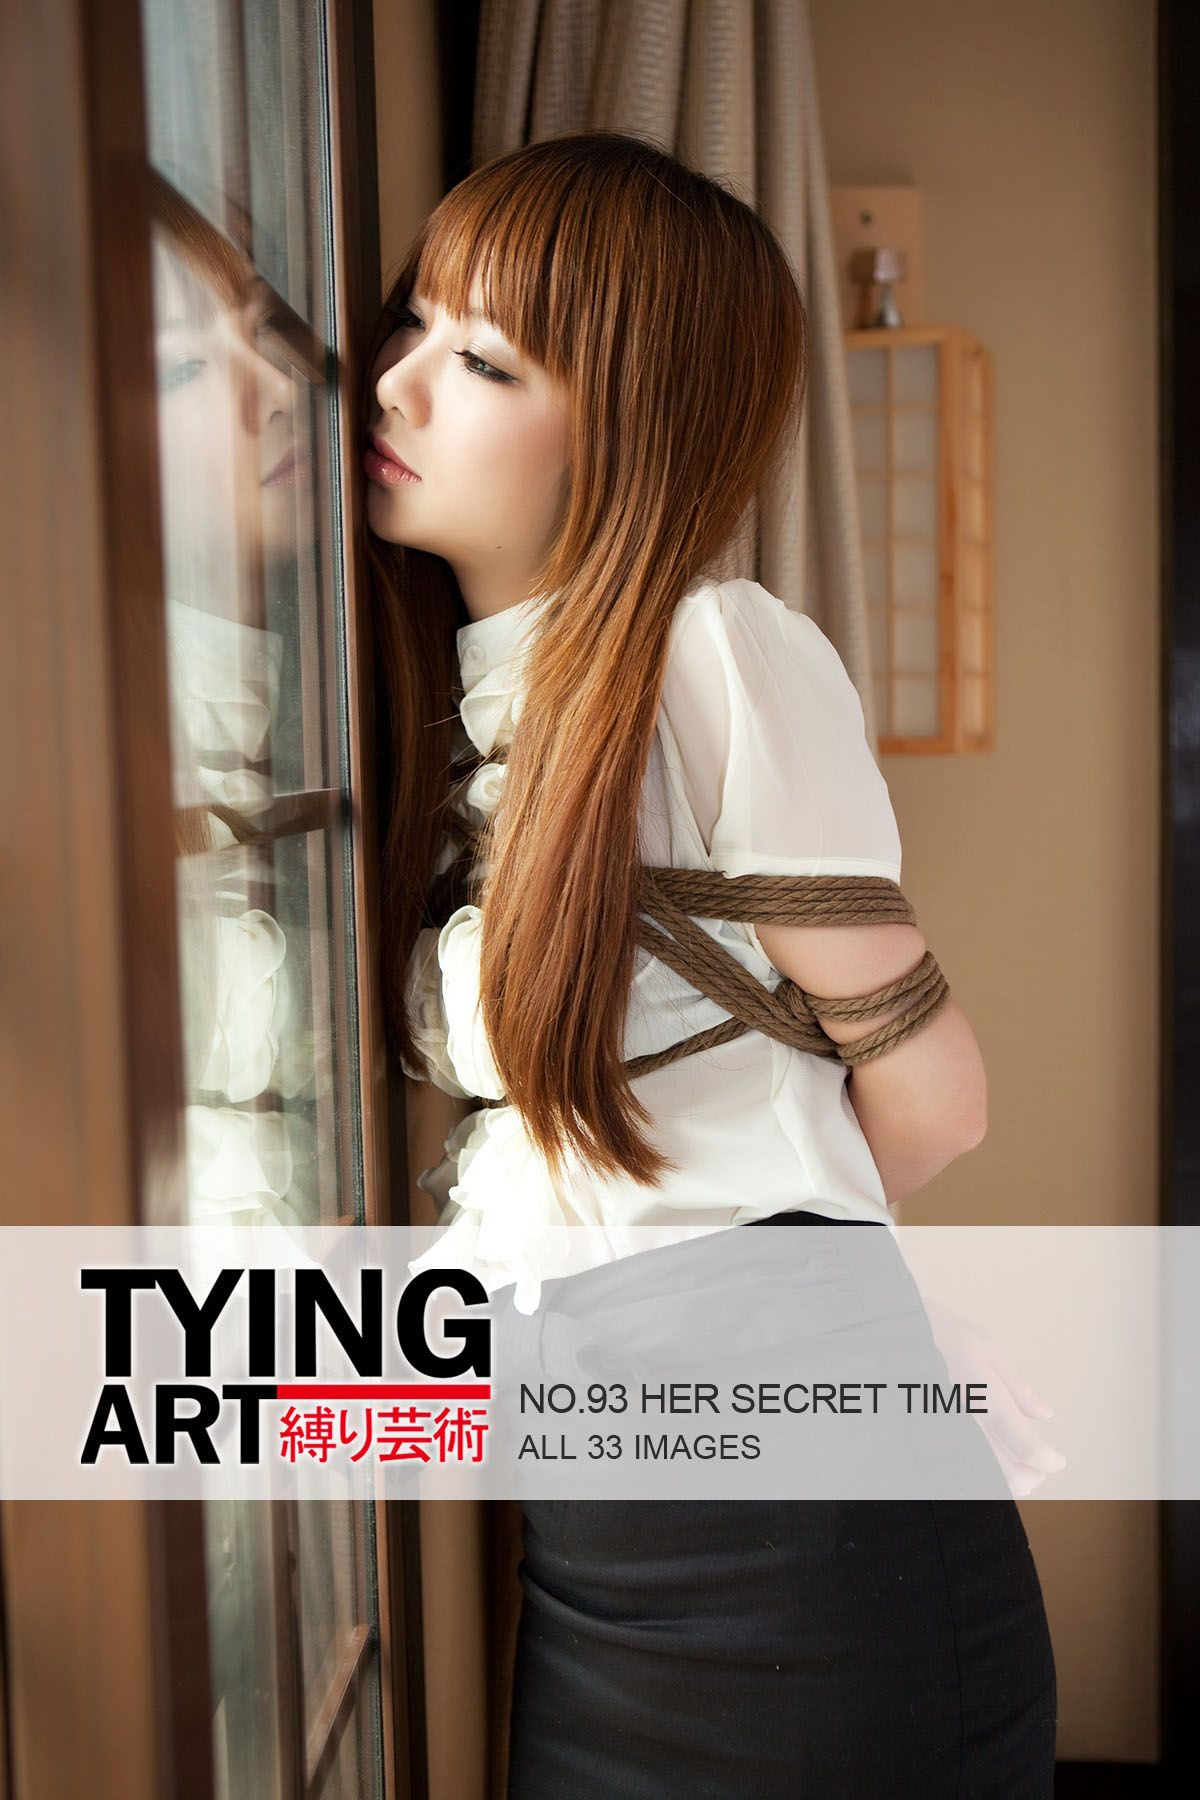 [TyingArt 縛リ芸術/禁忌摄影] NO.093 Dimdim Her Secret Time